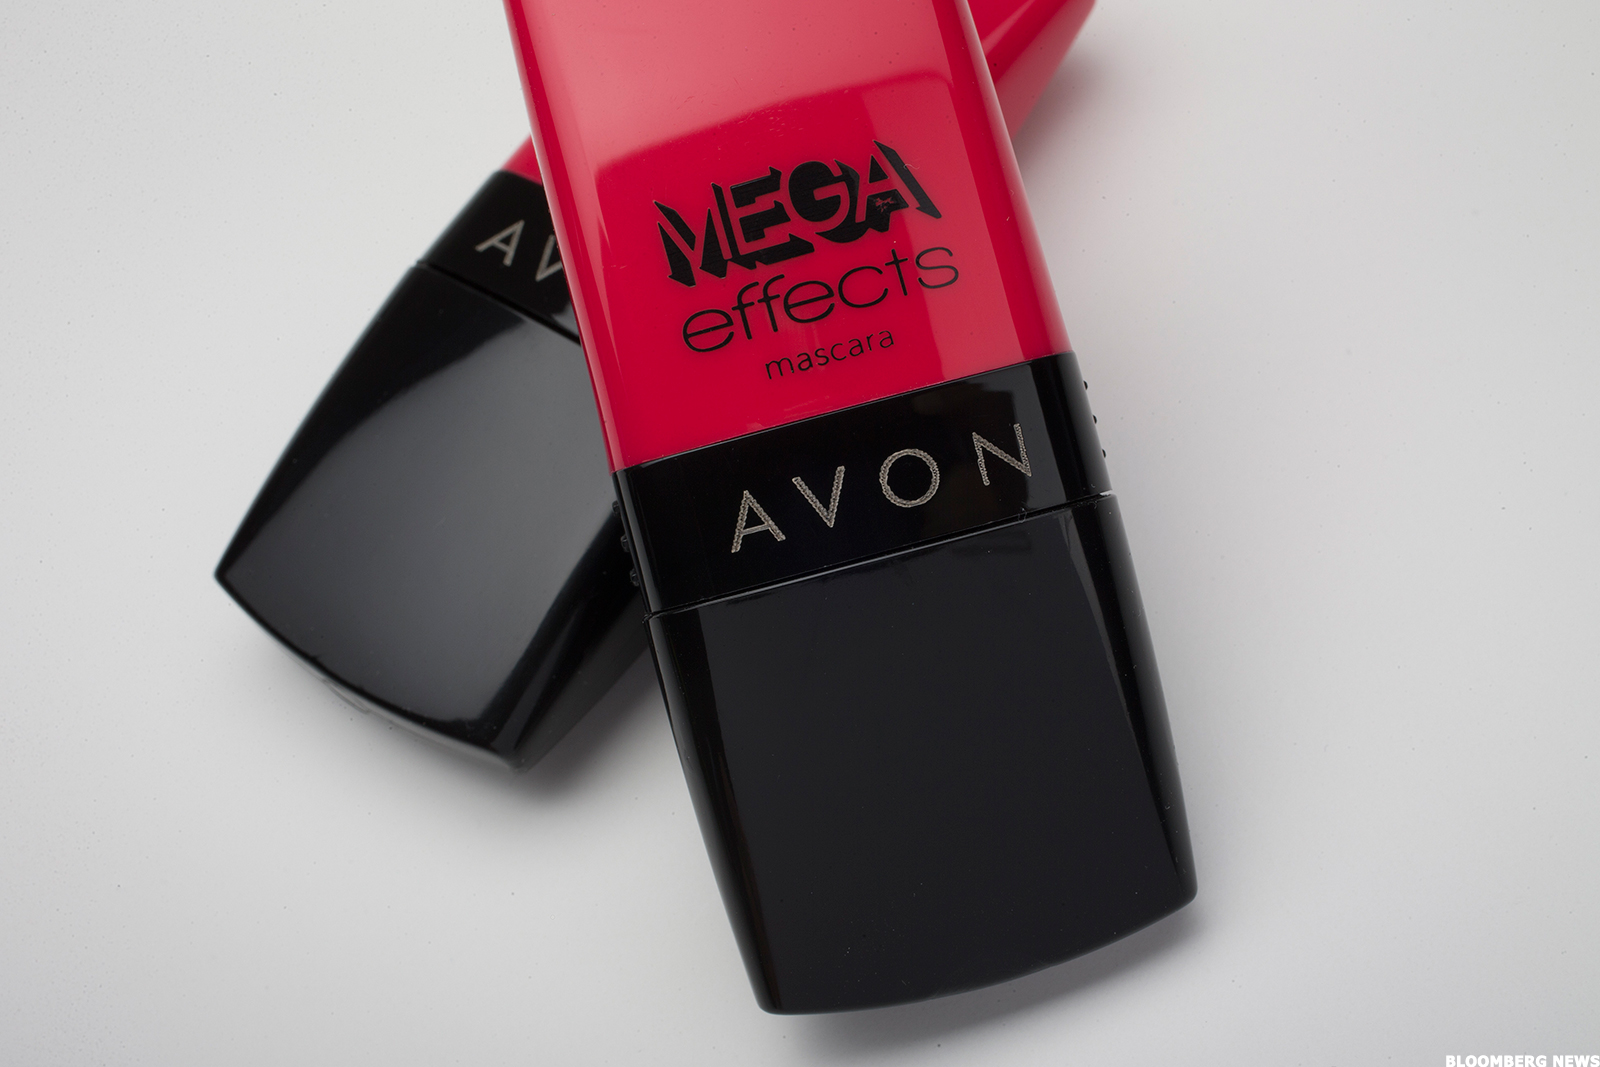 managing change of avon products inc essay